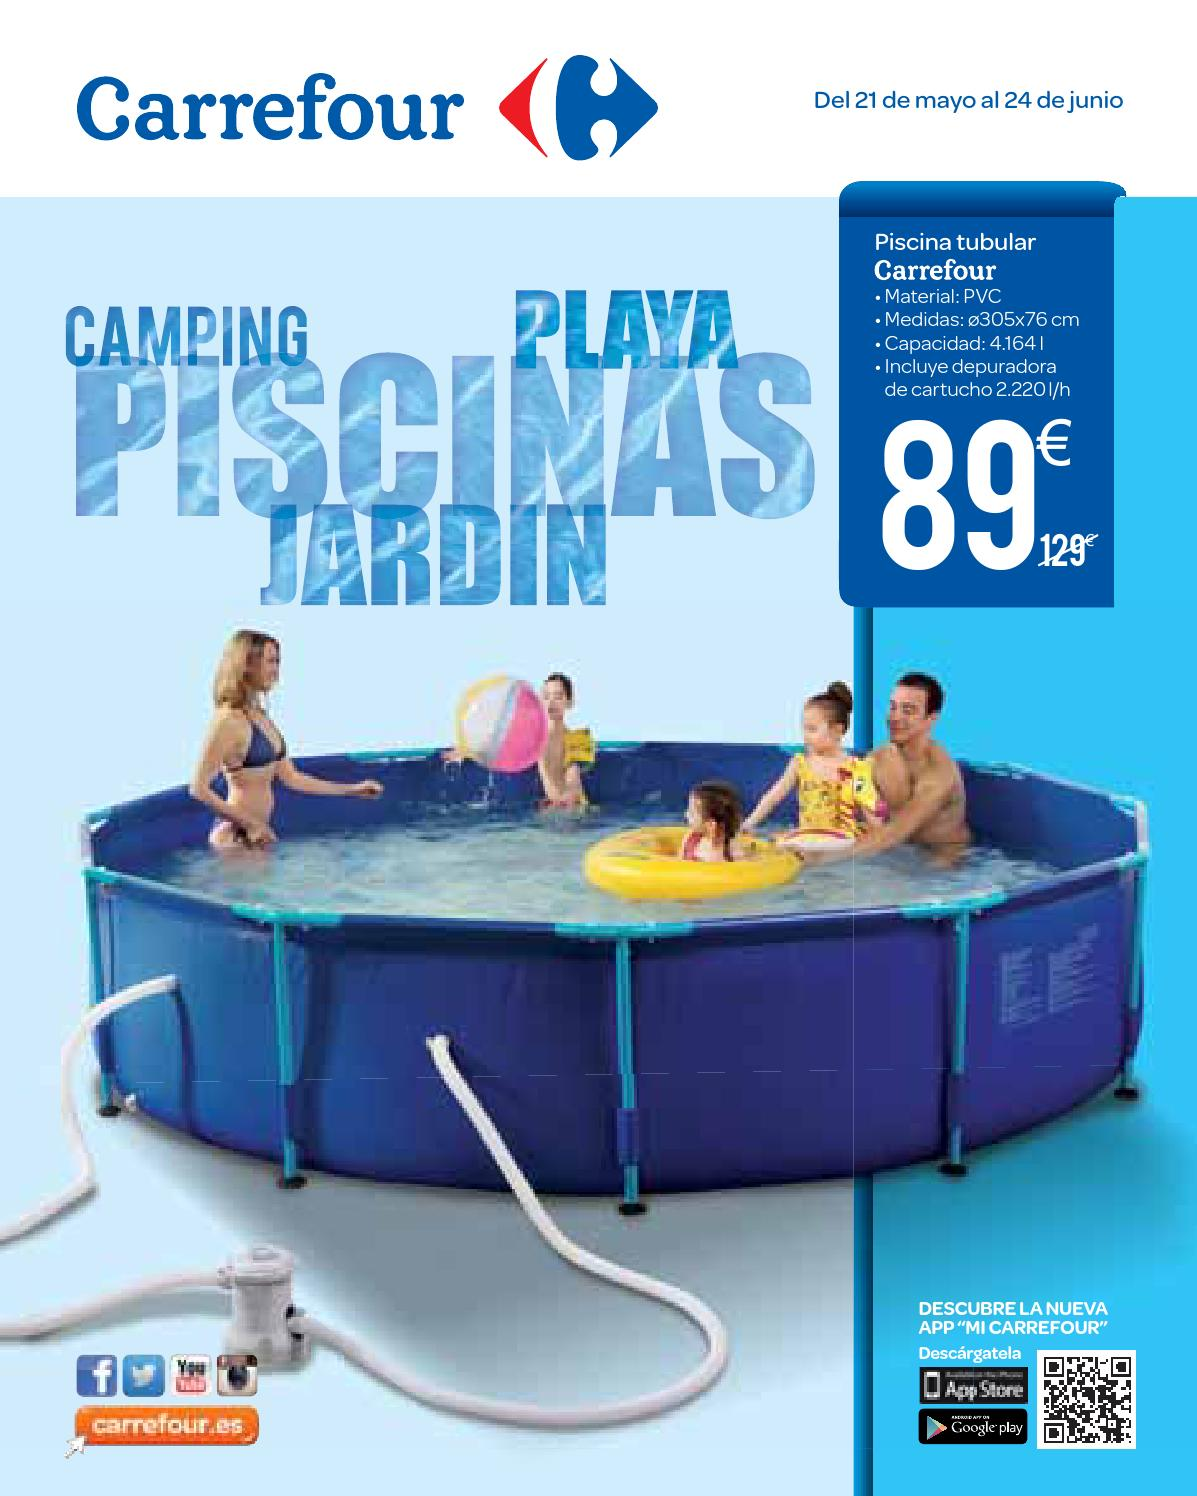 Piscinas y jardin by losdescuentos issuu - Carrefour piscina ...